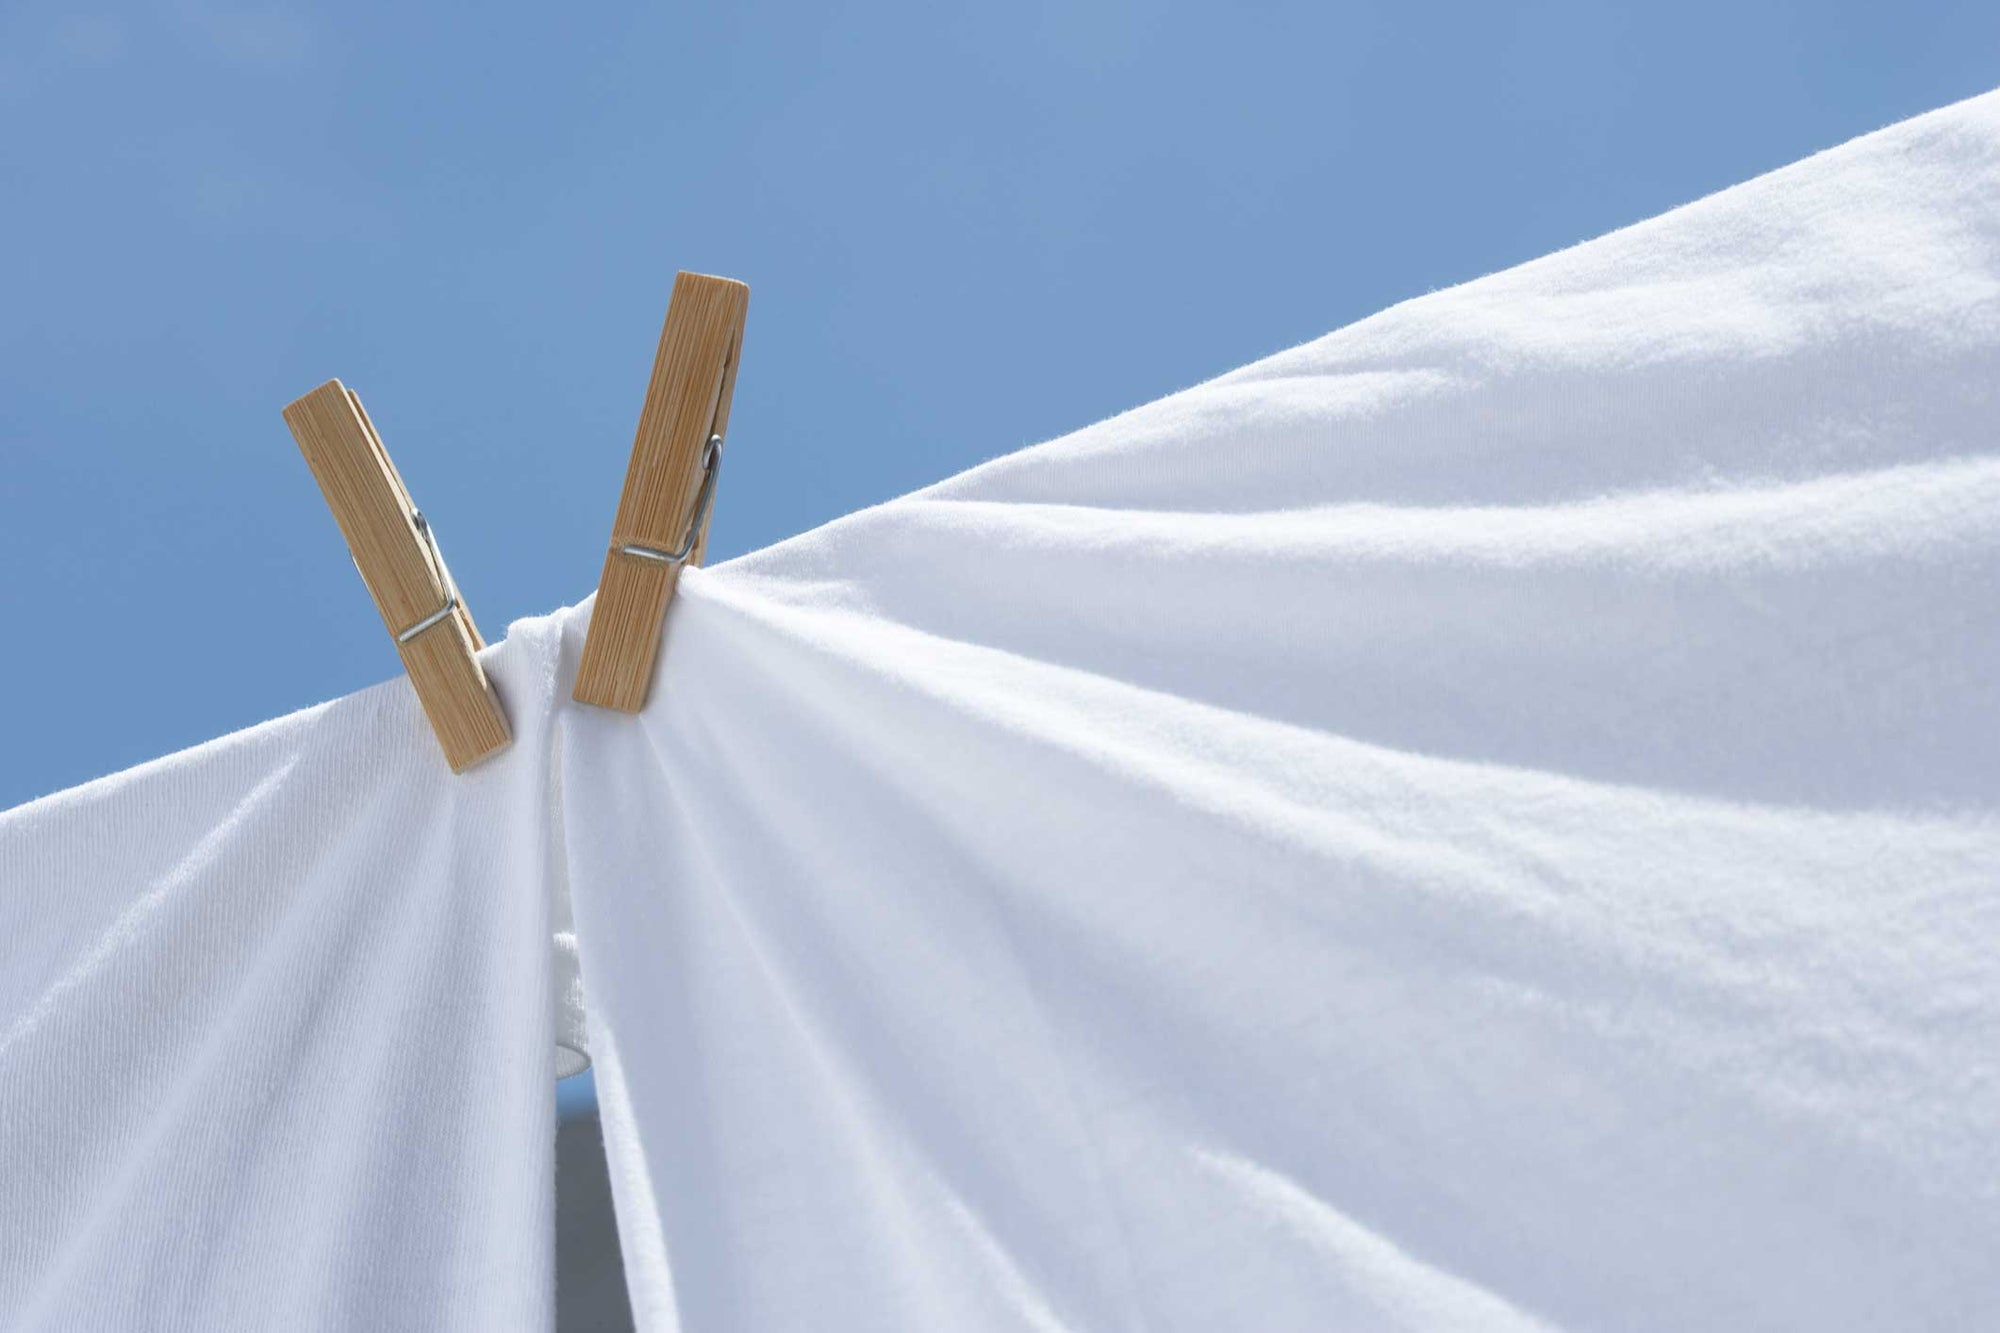 close up of white sheets drying in the sun on a line with clothes pins